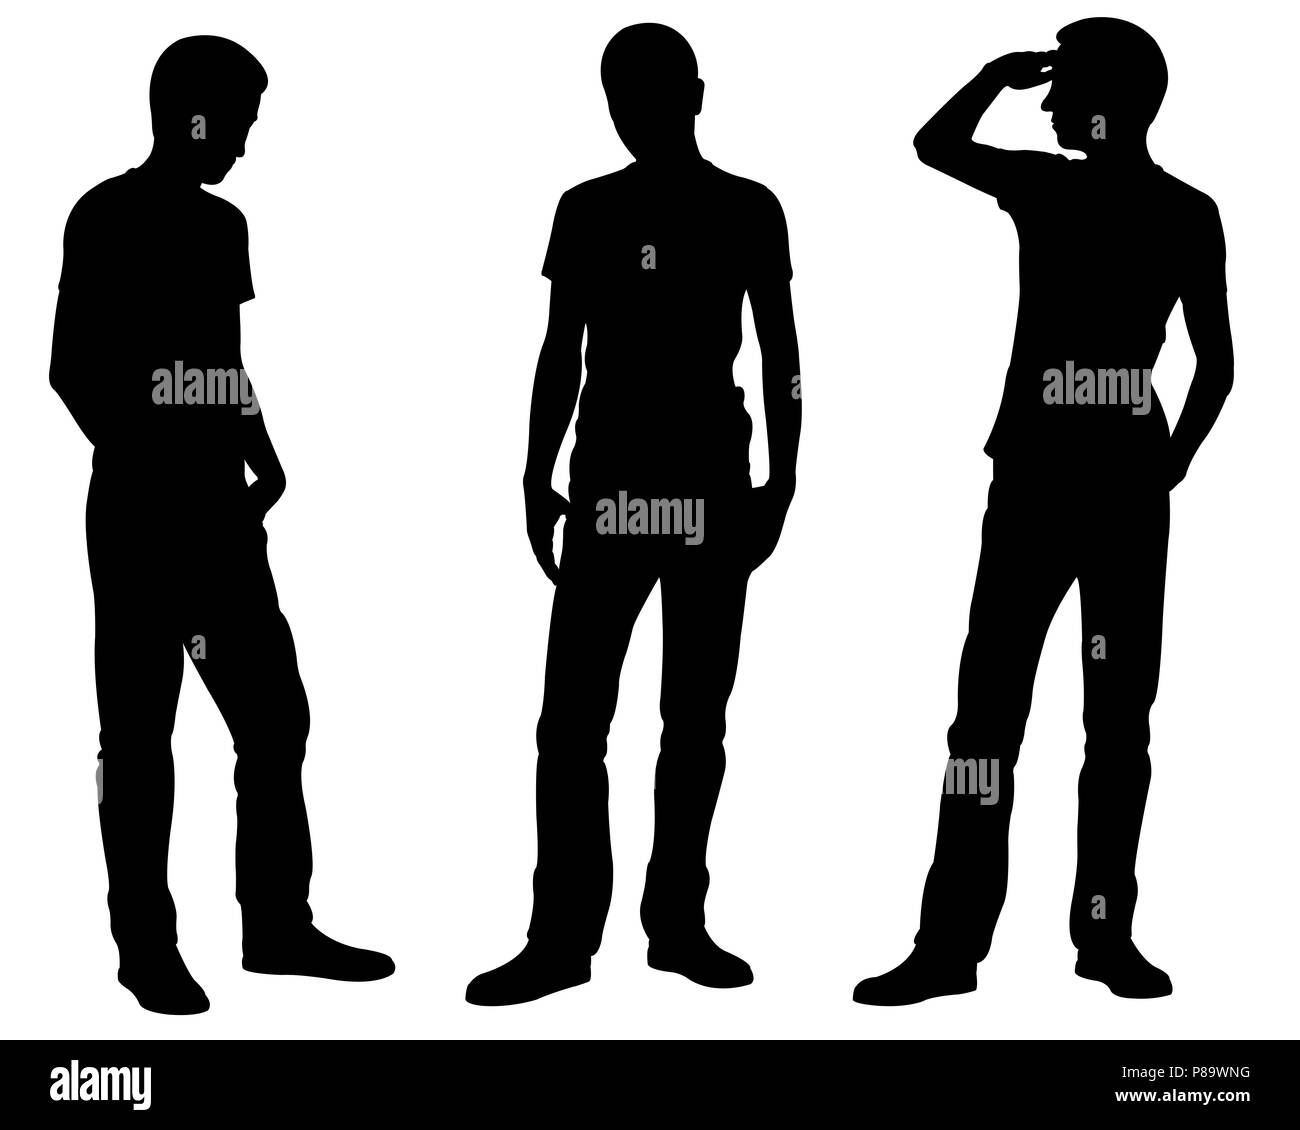 Silhouettes of men is different standing positions isolated on white - Stock Image